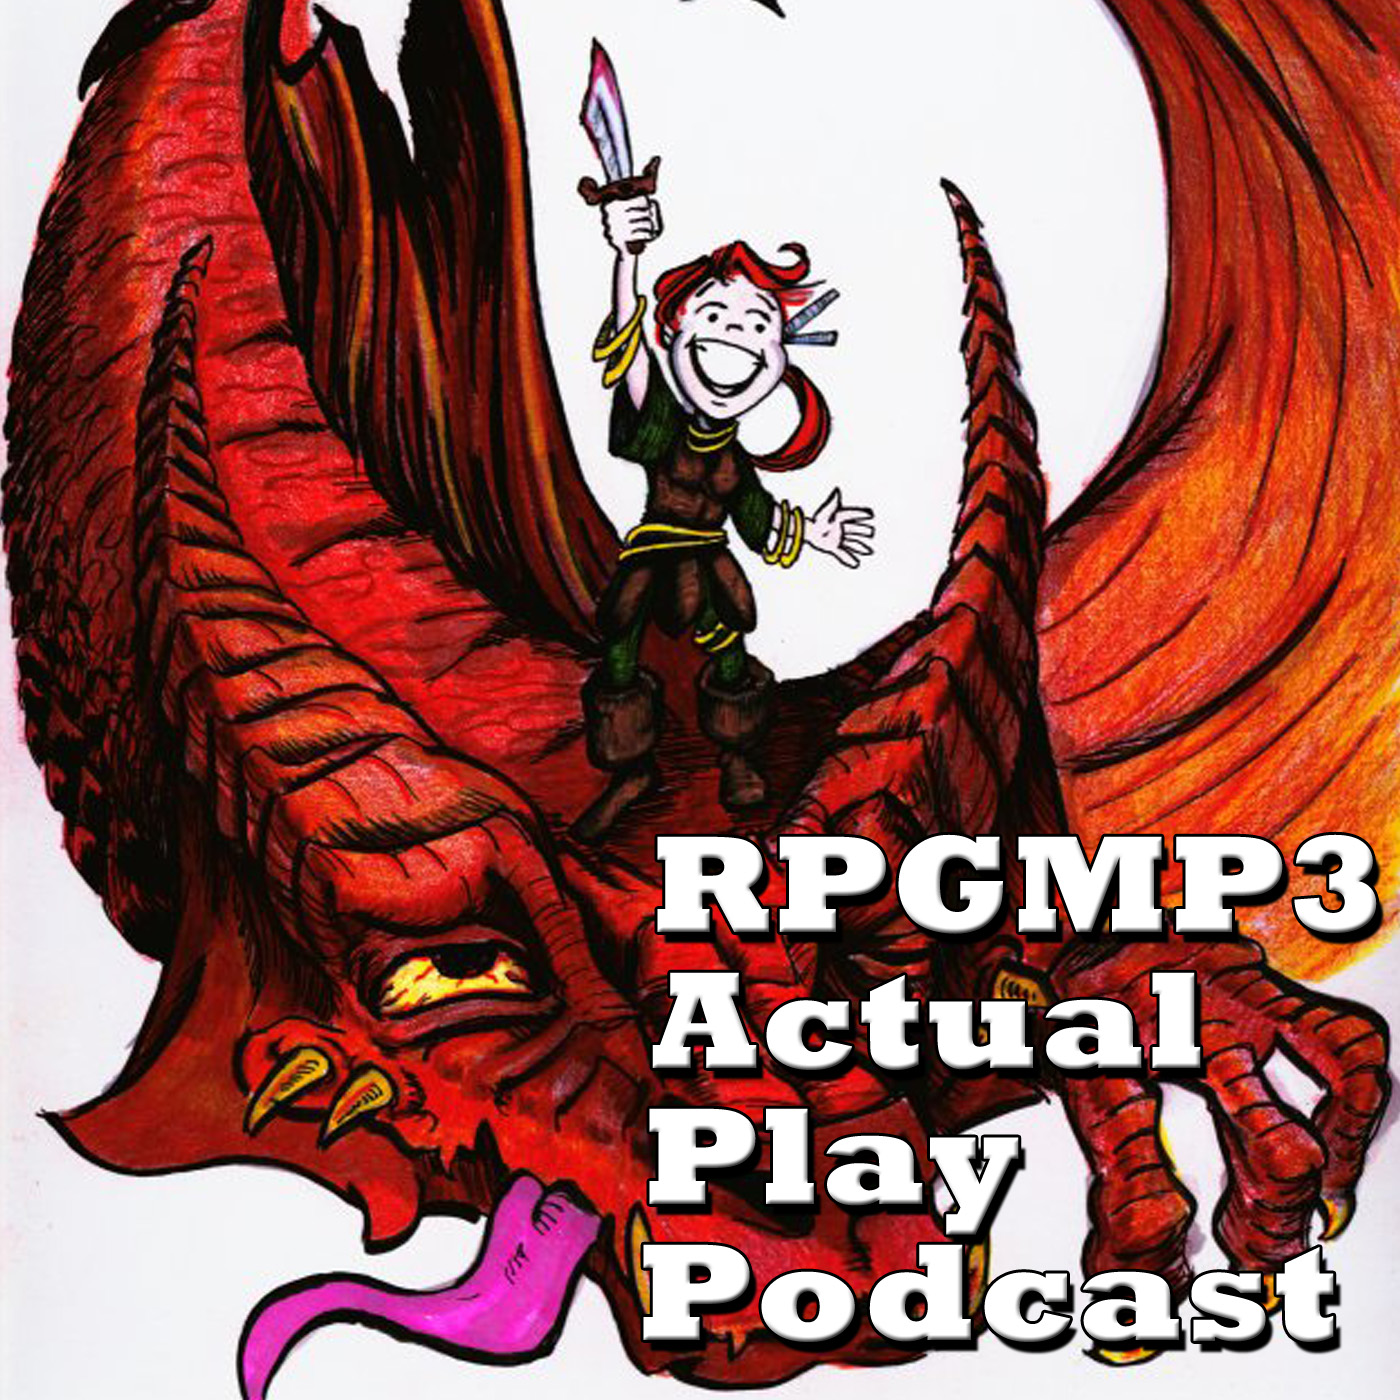 RPGMP3 Actual Play Podcast logo